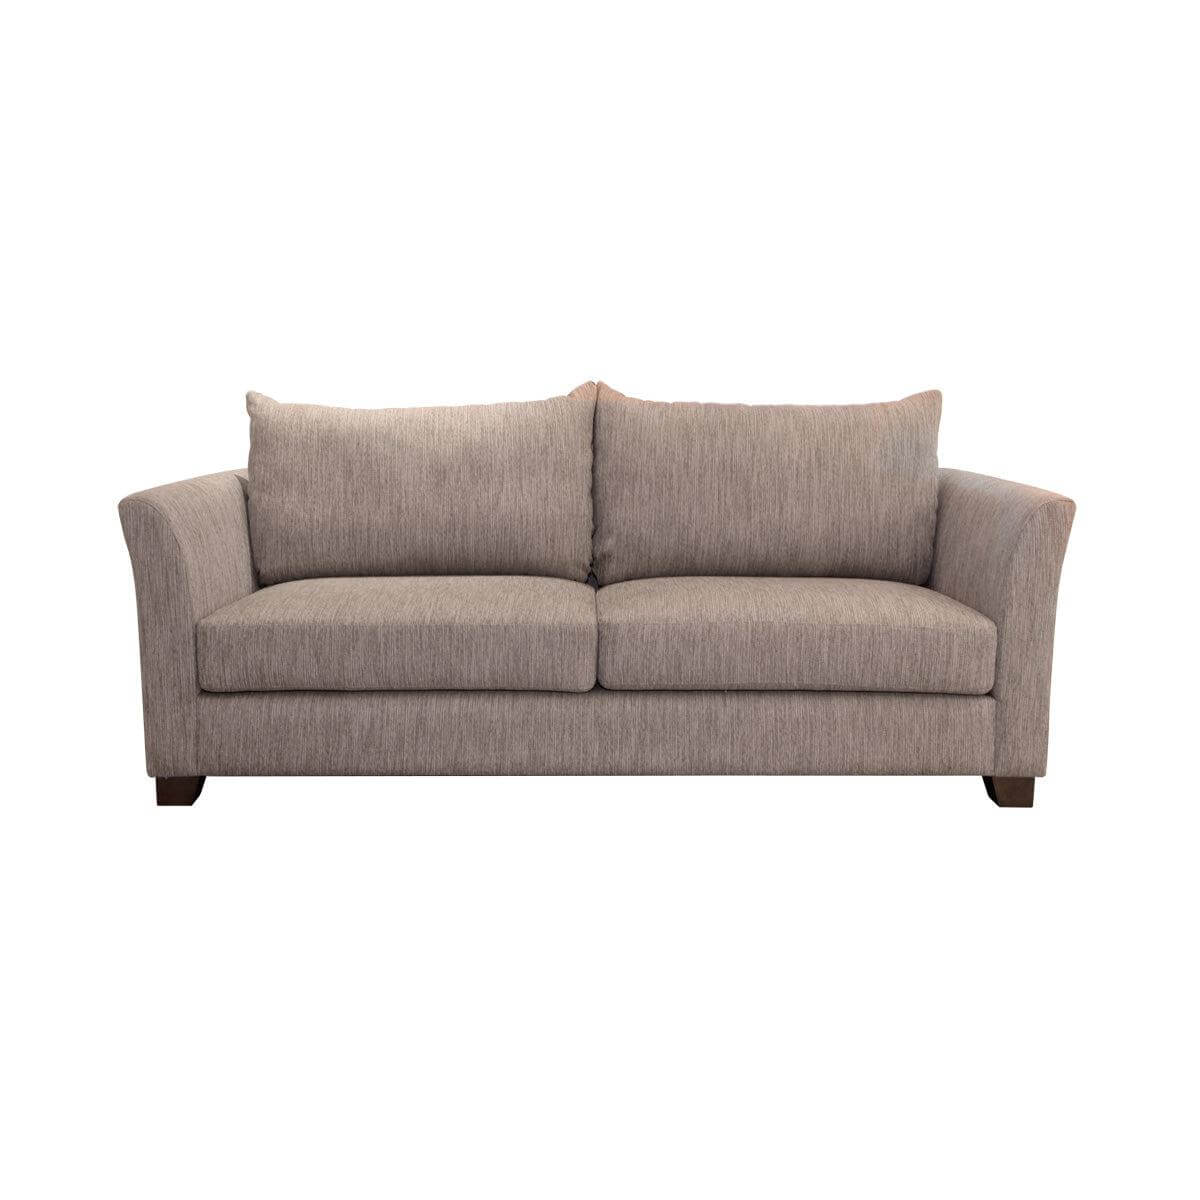 Simplicity three seat sofa, honesty and clean lines sofa